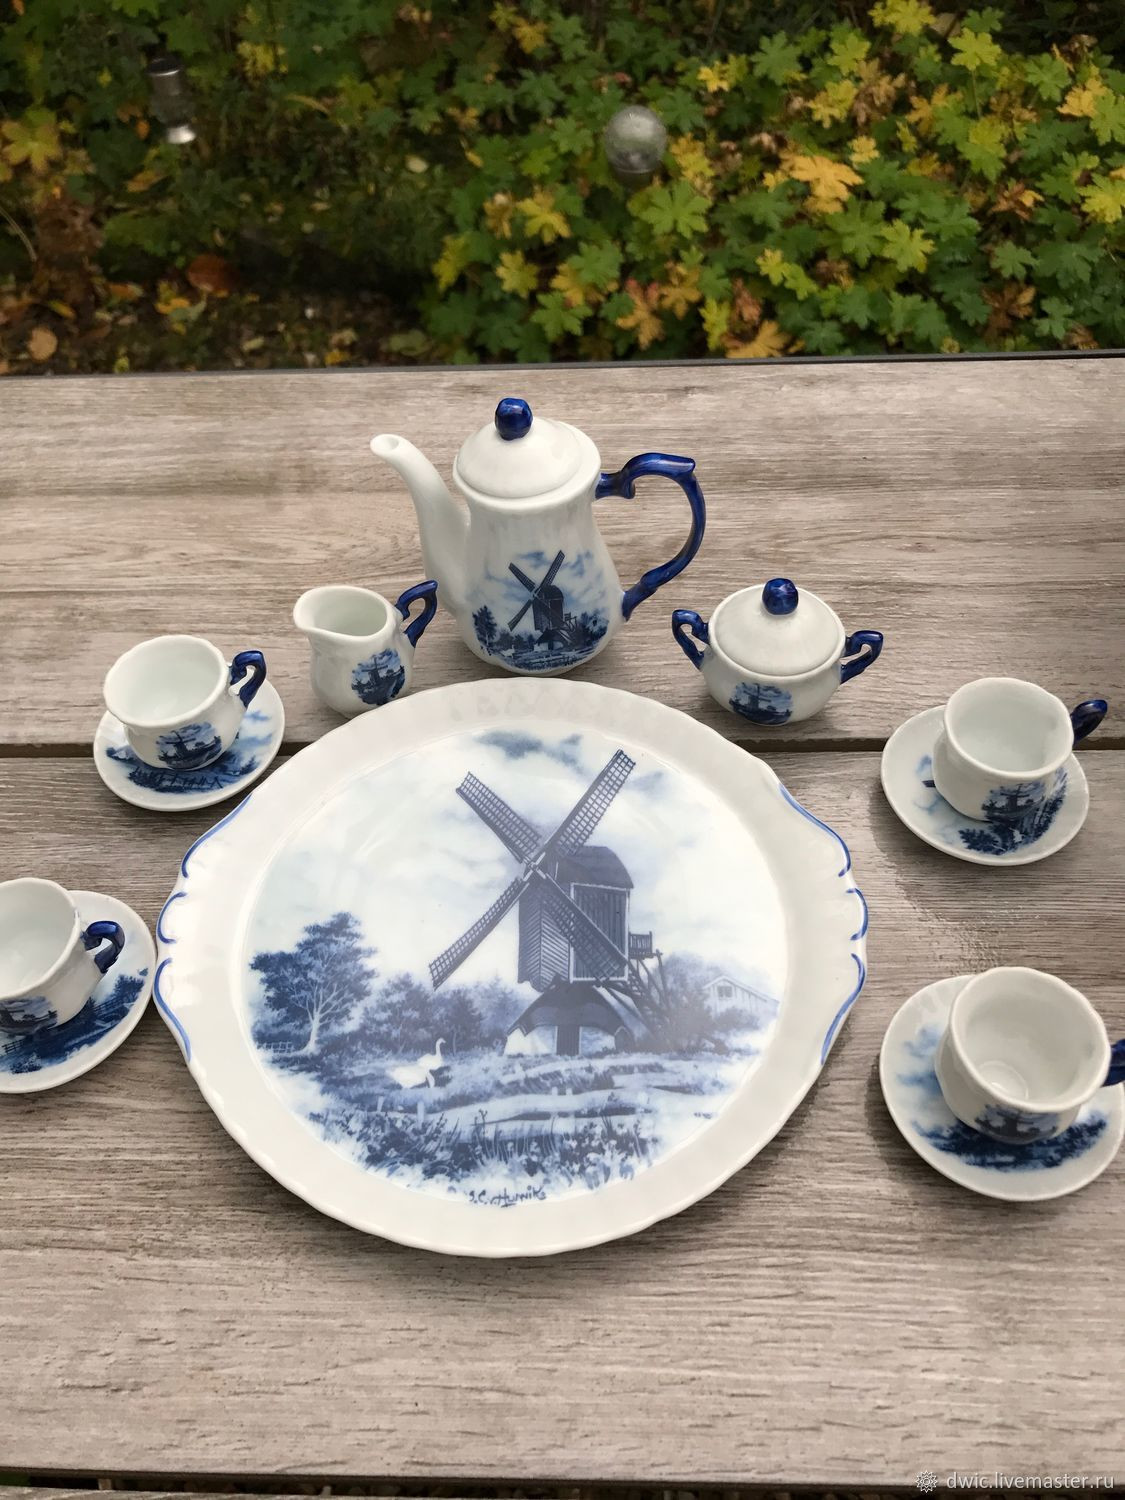 delft blue vase of childrens tea set handcrafted mill delft the netherlands pertaining to childrens tea set handcrafted mill delft